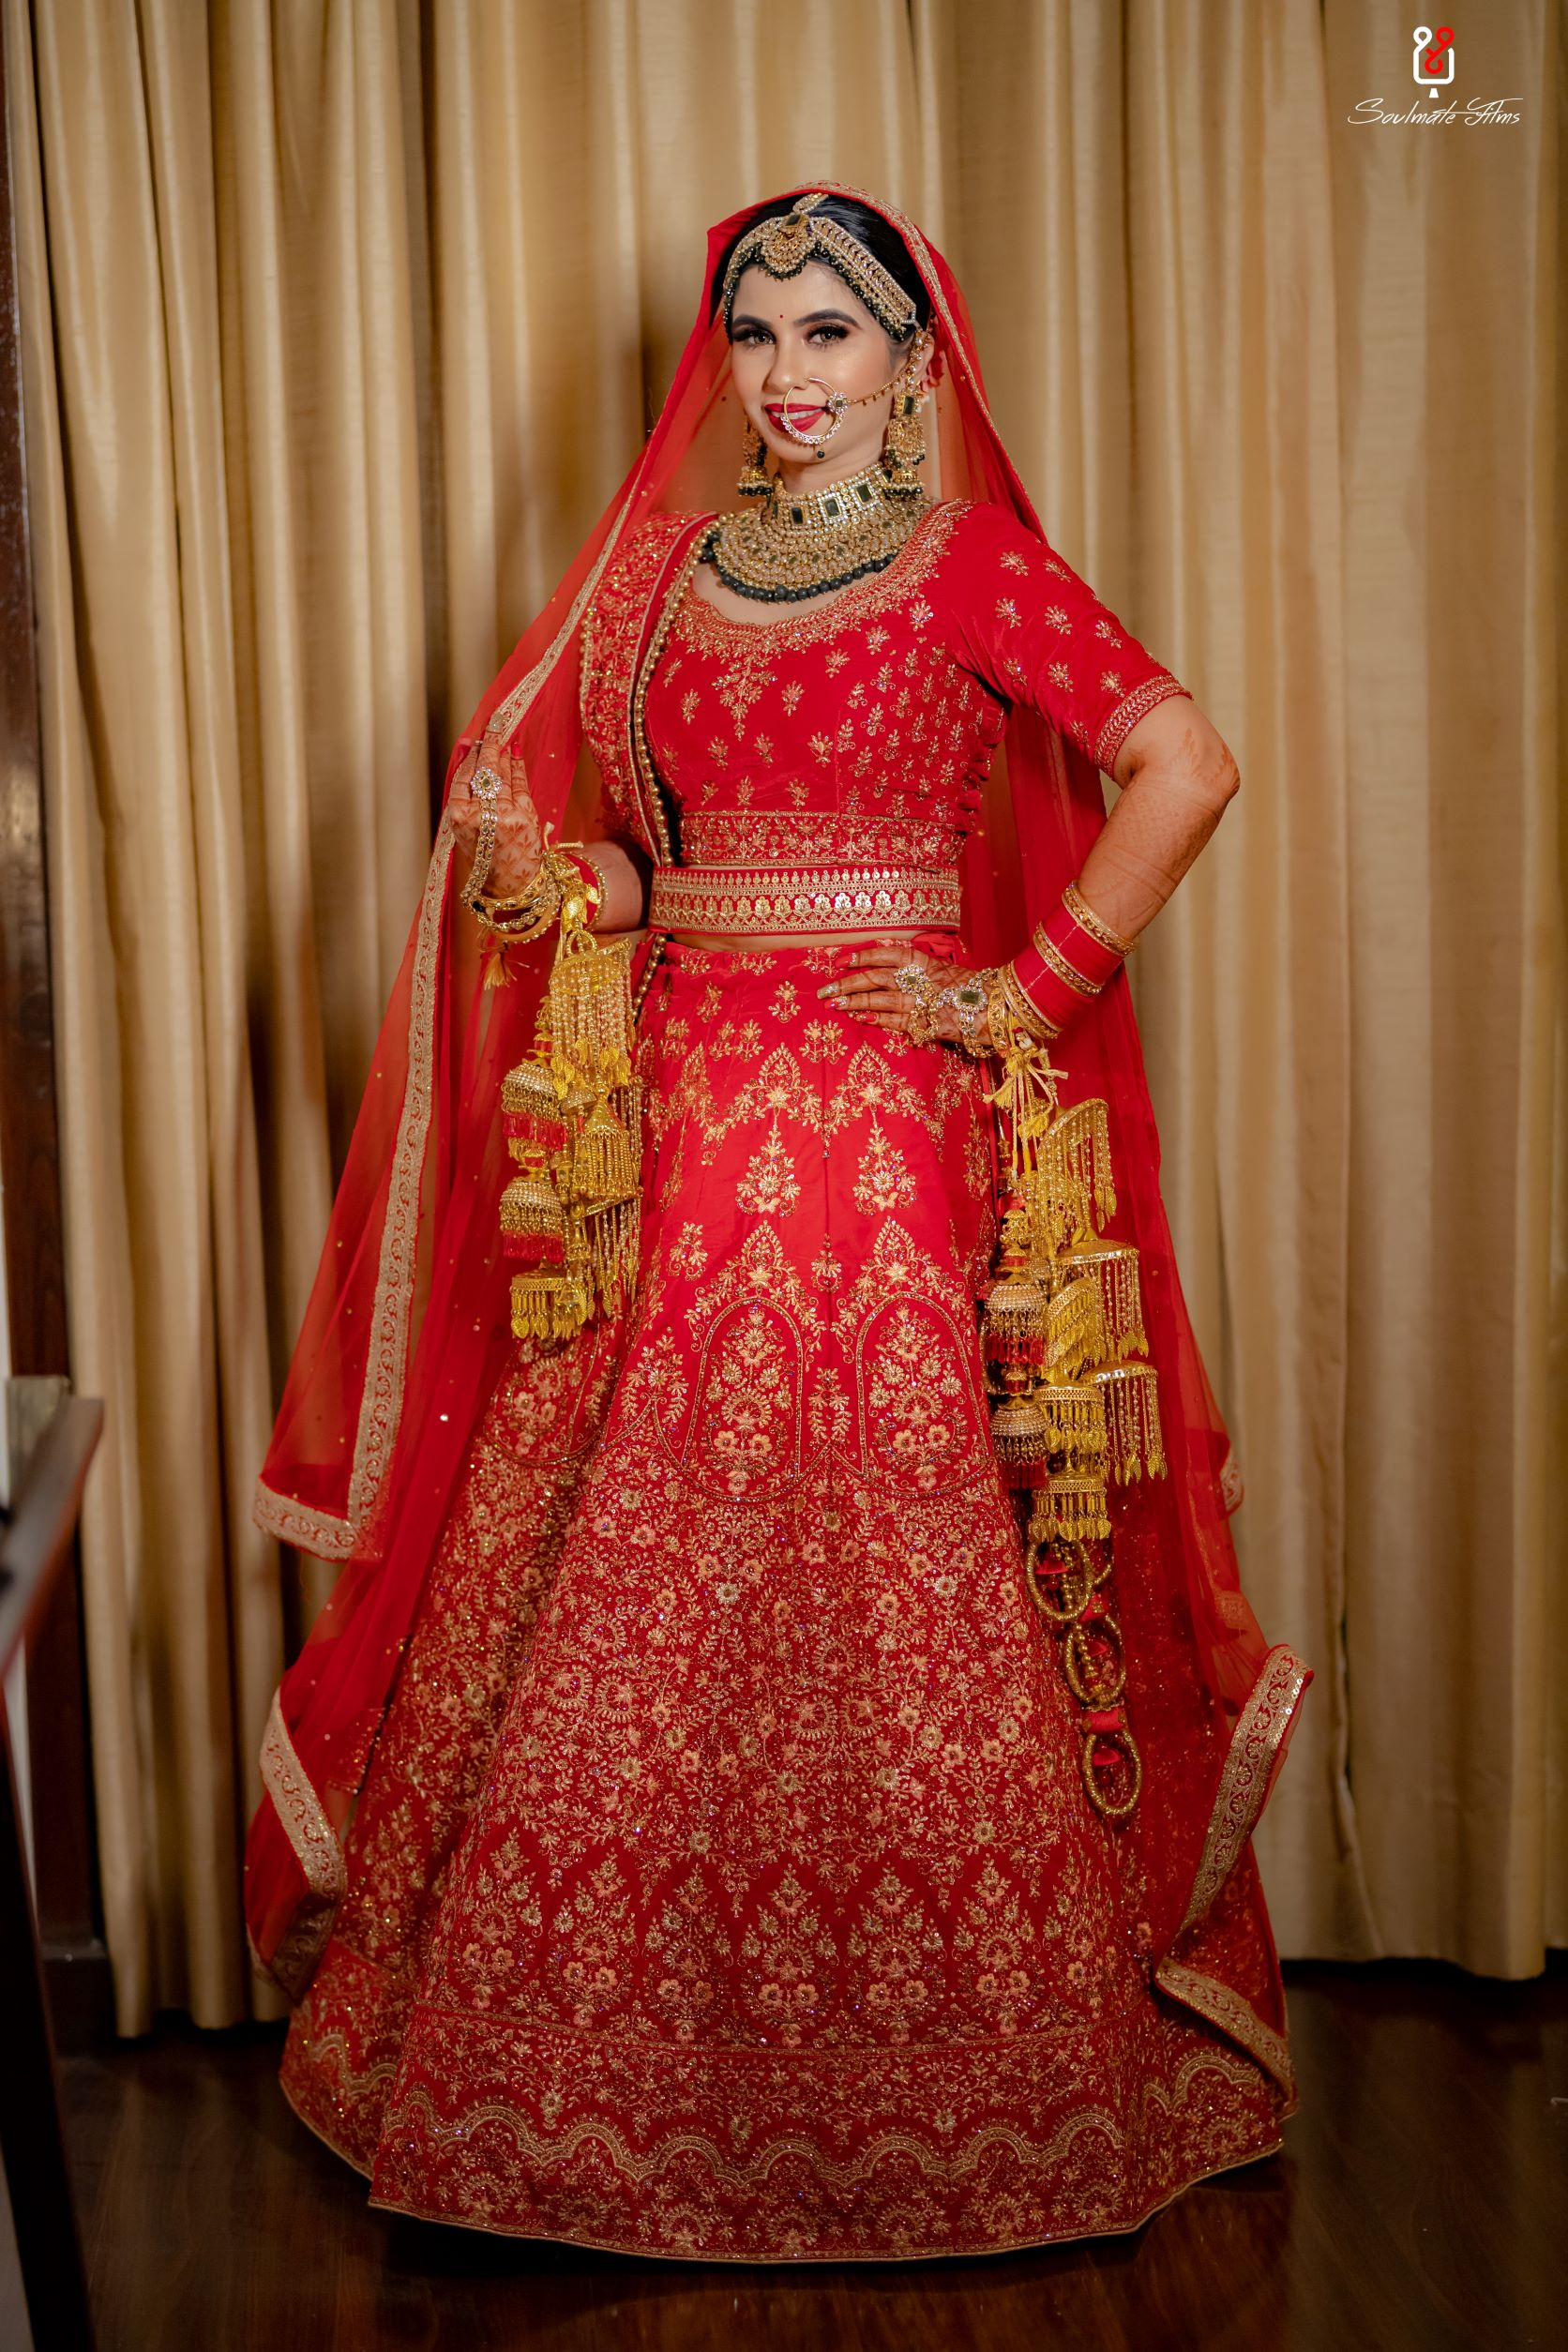 bride poses with her red bridal dupatta